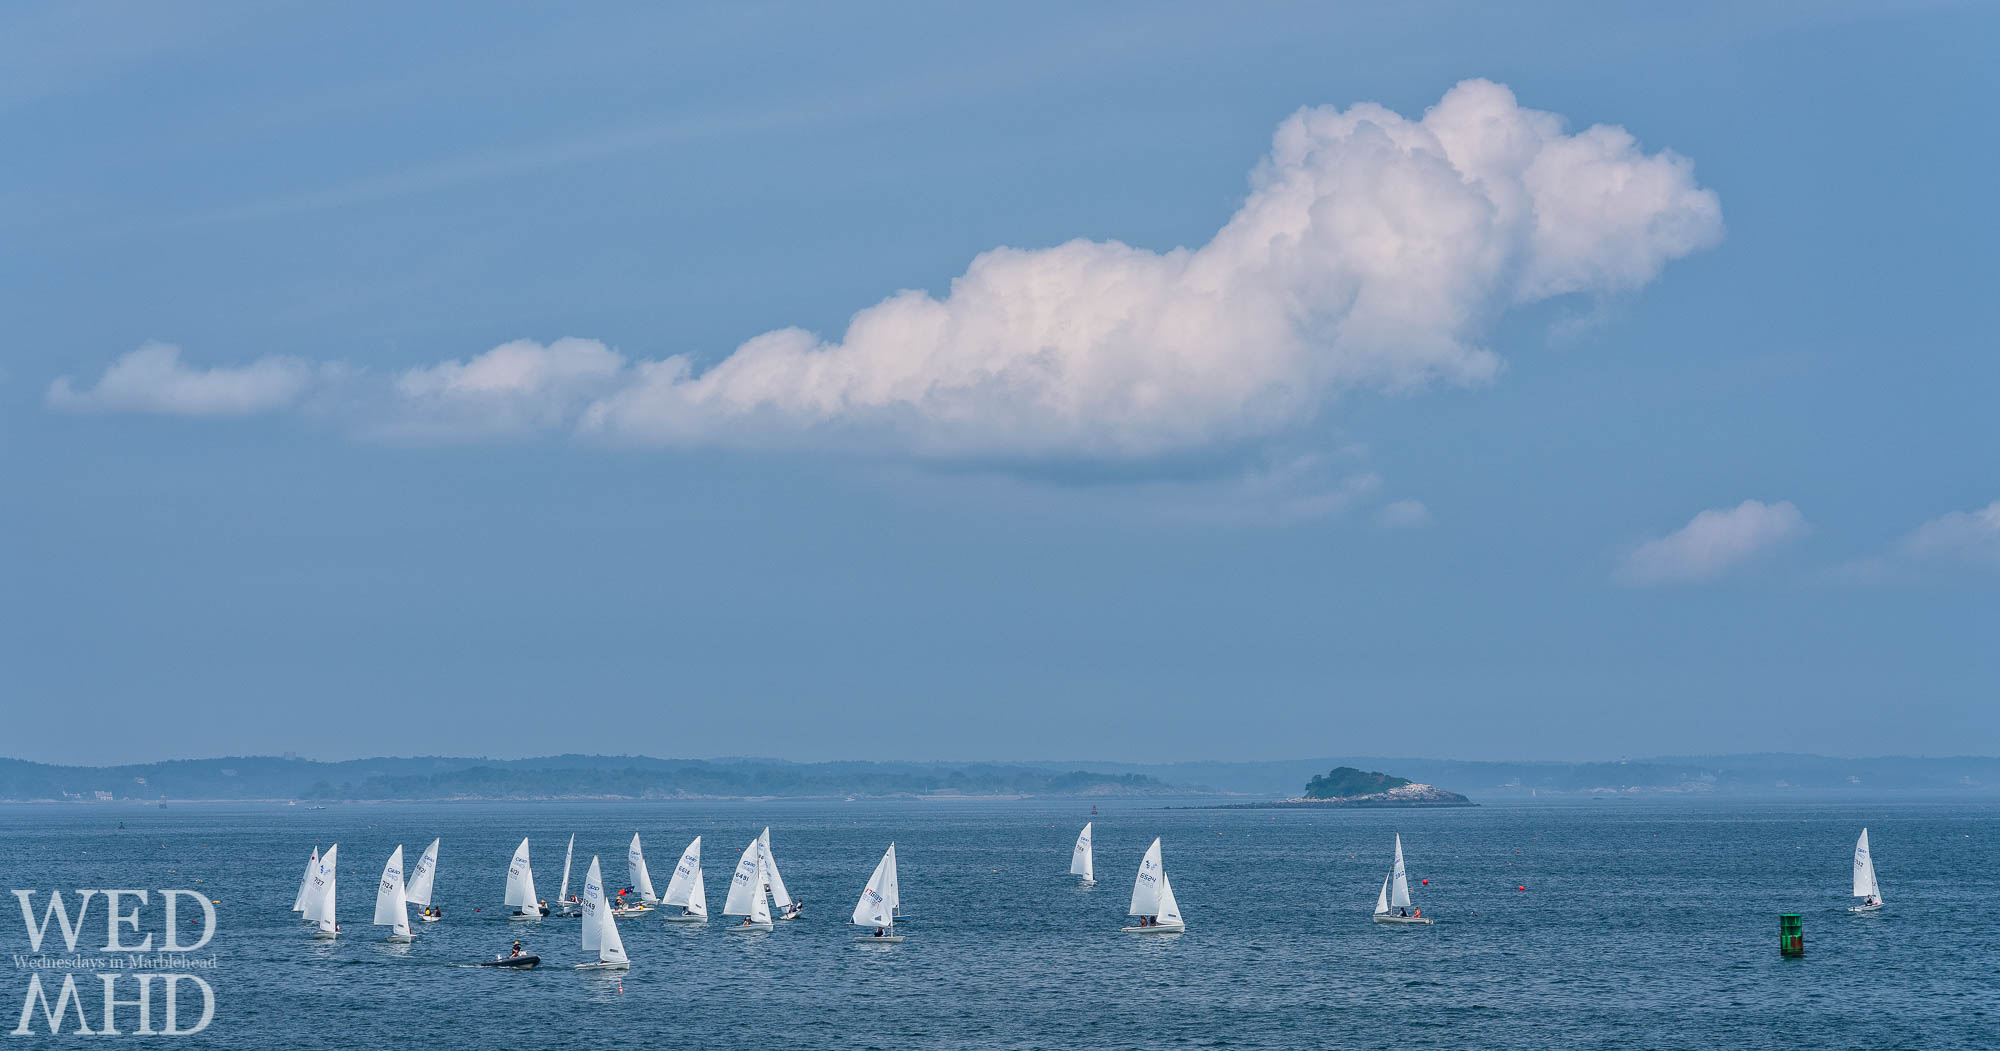 C420s sail in the waters off Marblehead Harbor with a few clouds overhead